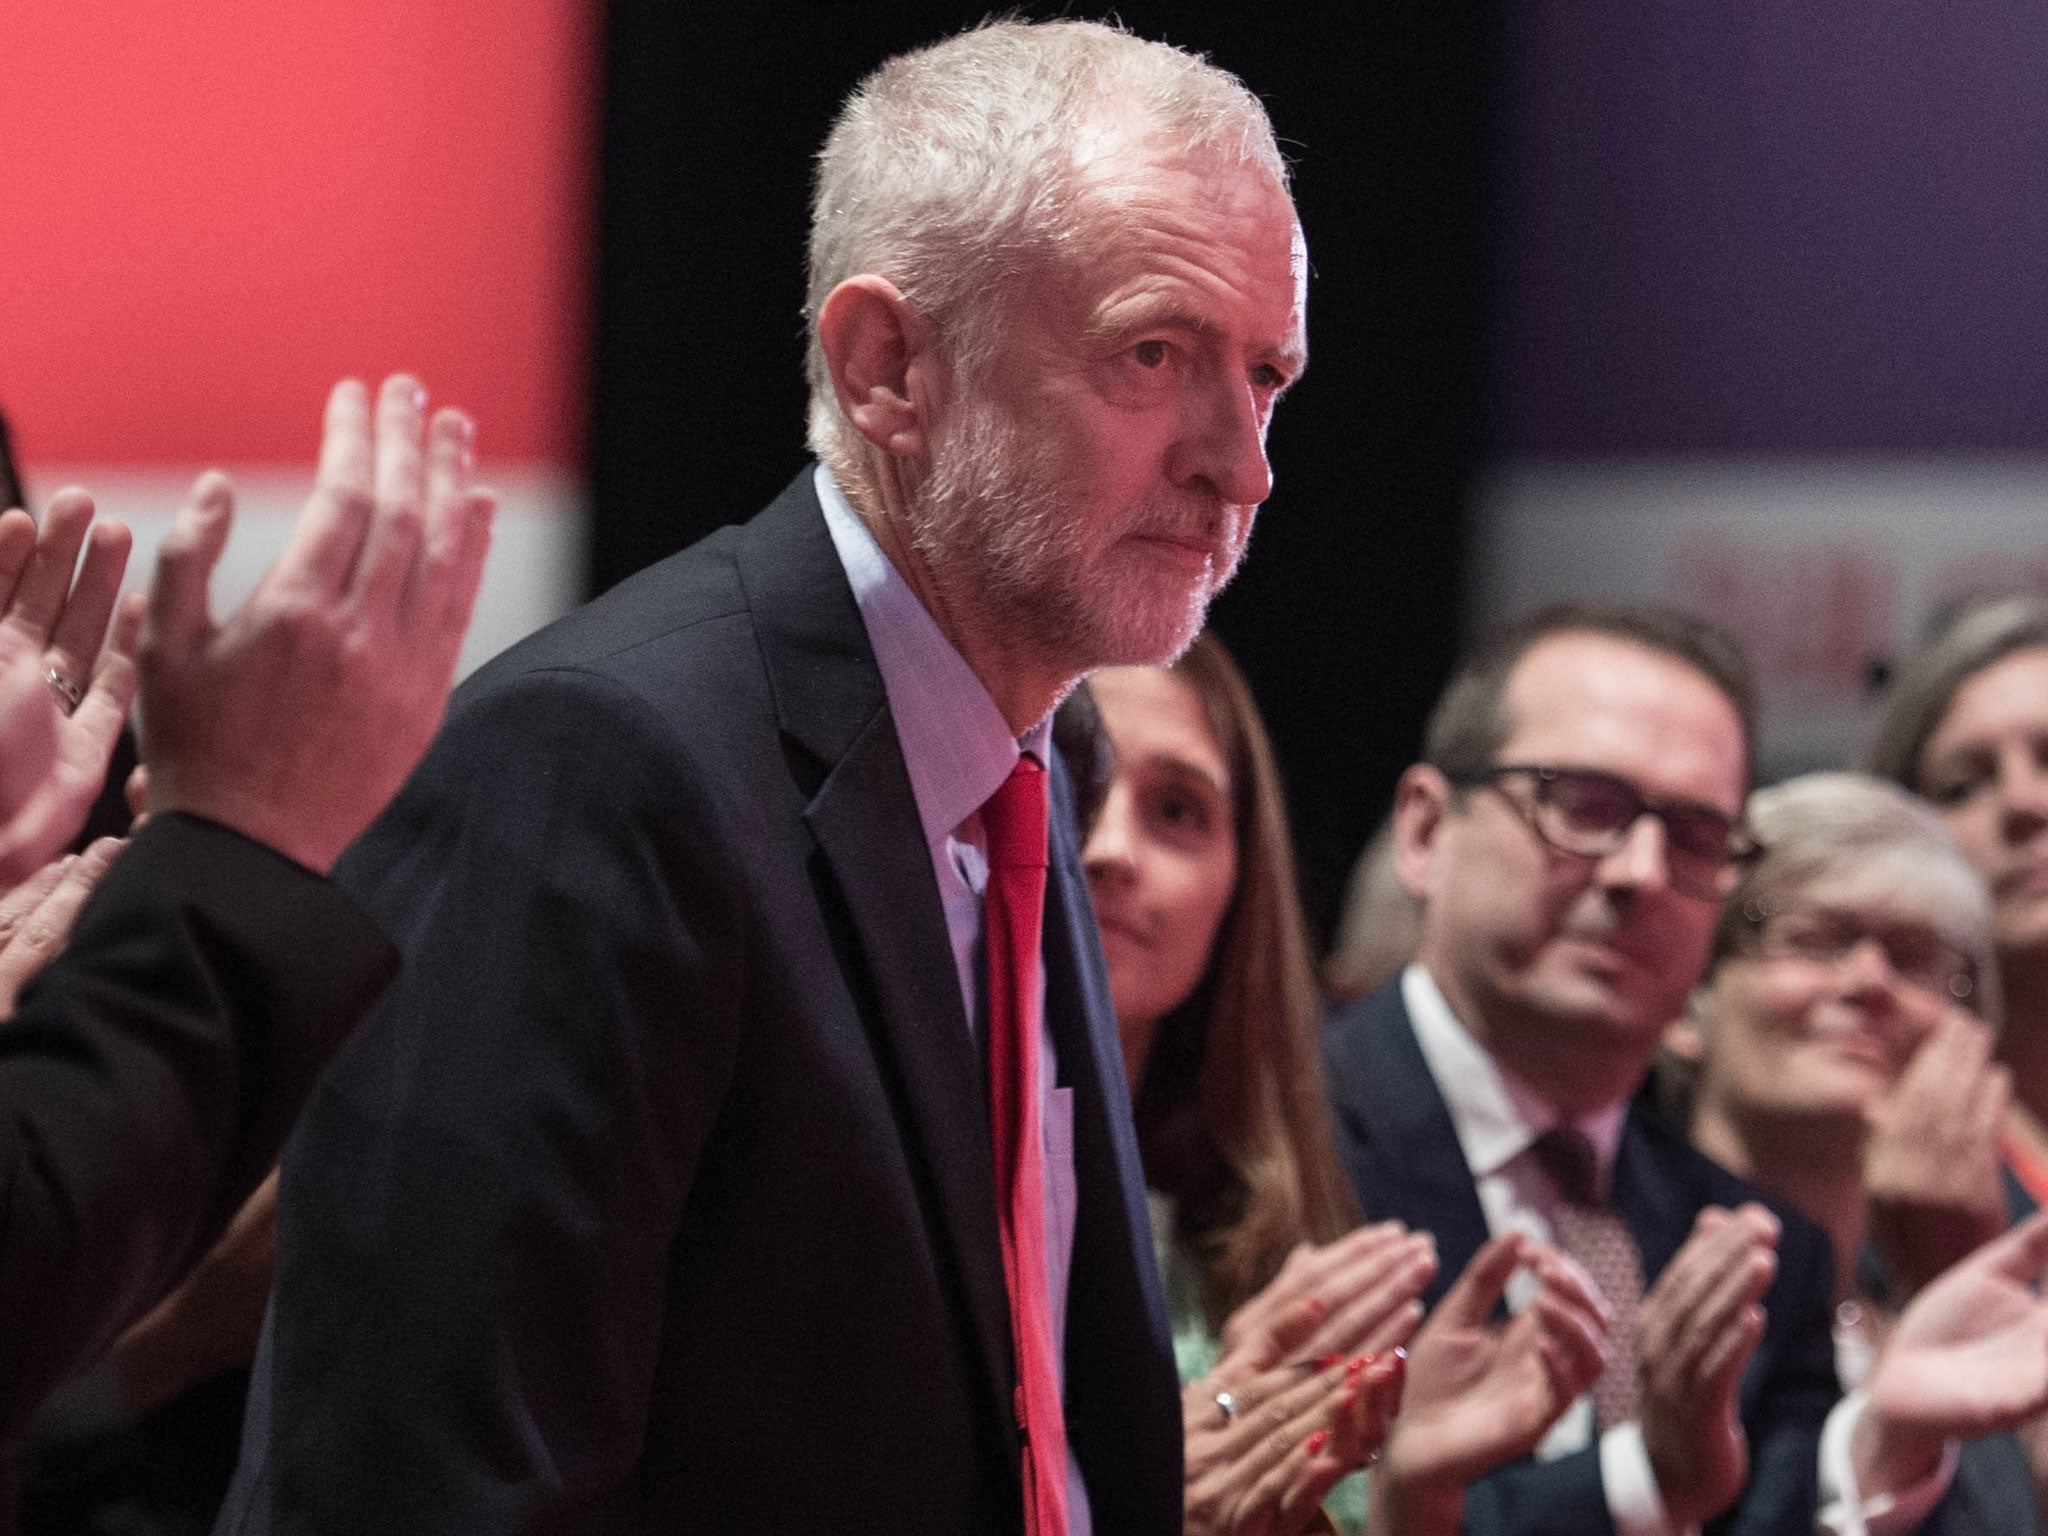 Tension grows as Labour fails to agree 'peace plan' to let MPs elect Jeremy Corbyn's shadow cabinet